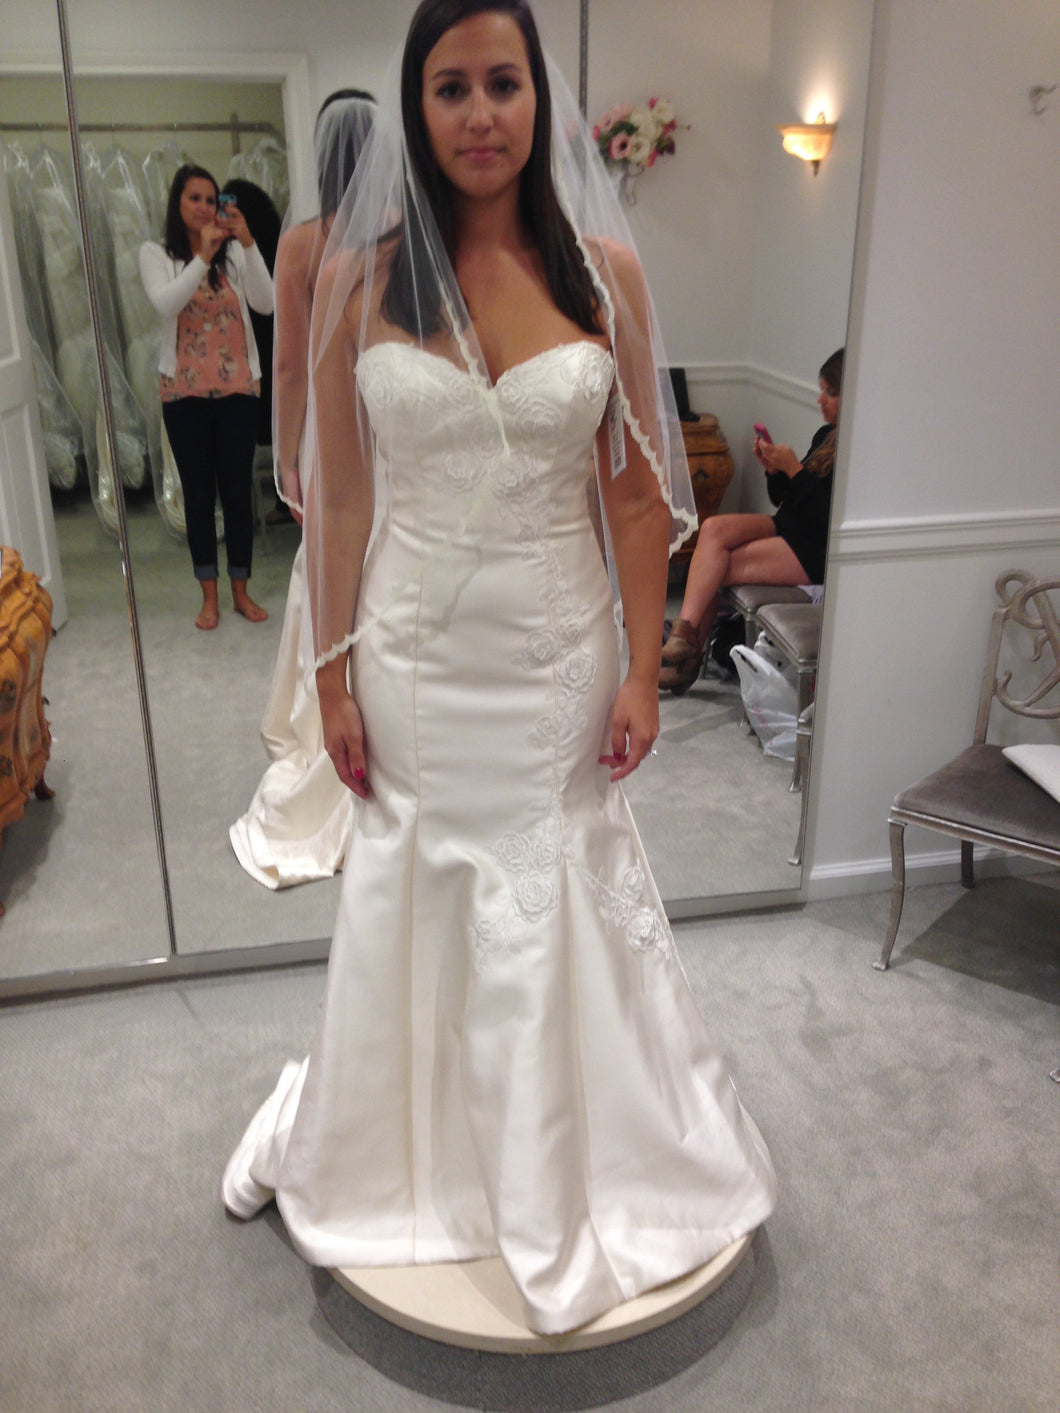 Tara Keely 'Sweetheart' - Tara Keely - Nearly Newlywed Bridal Boutique - 1